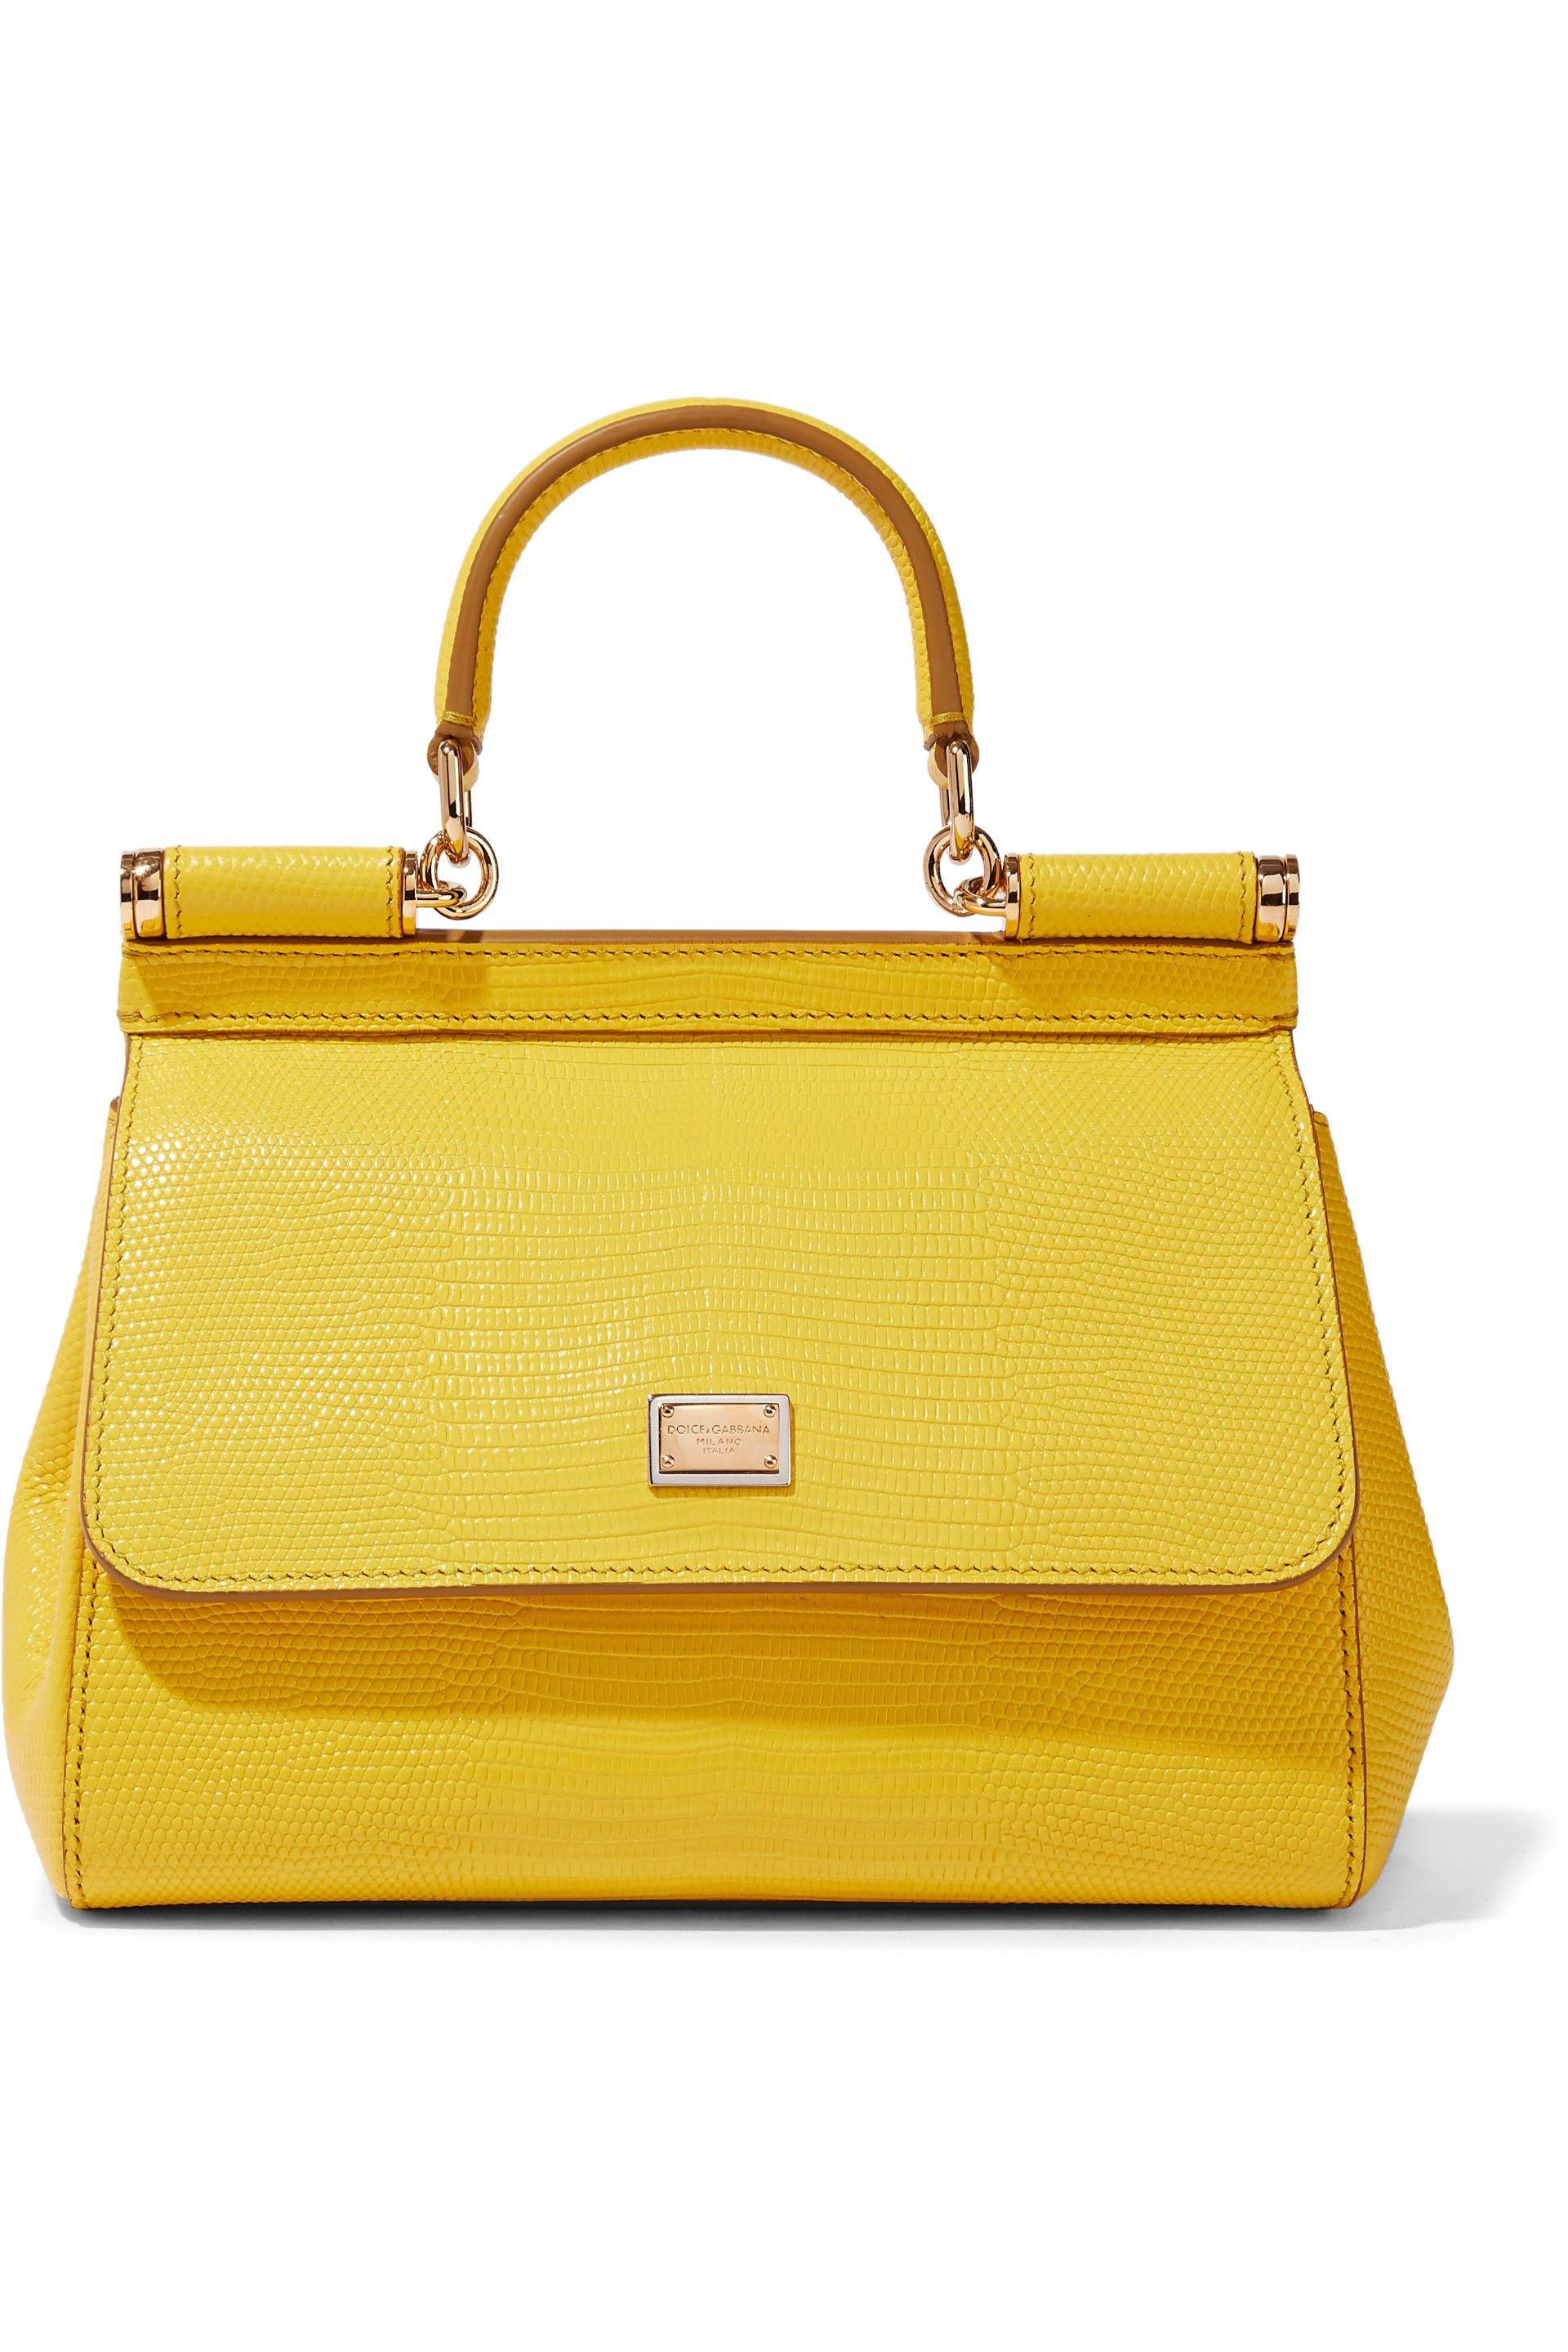 ff5ed01d2c95 Dolce   Gabbana. Women s Woman Sicily Lizard-effect Leather Shoulder Bag  Yellow